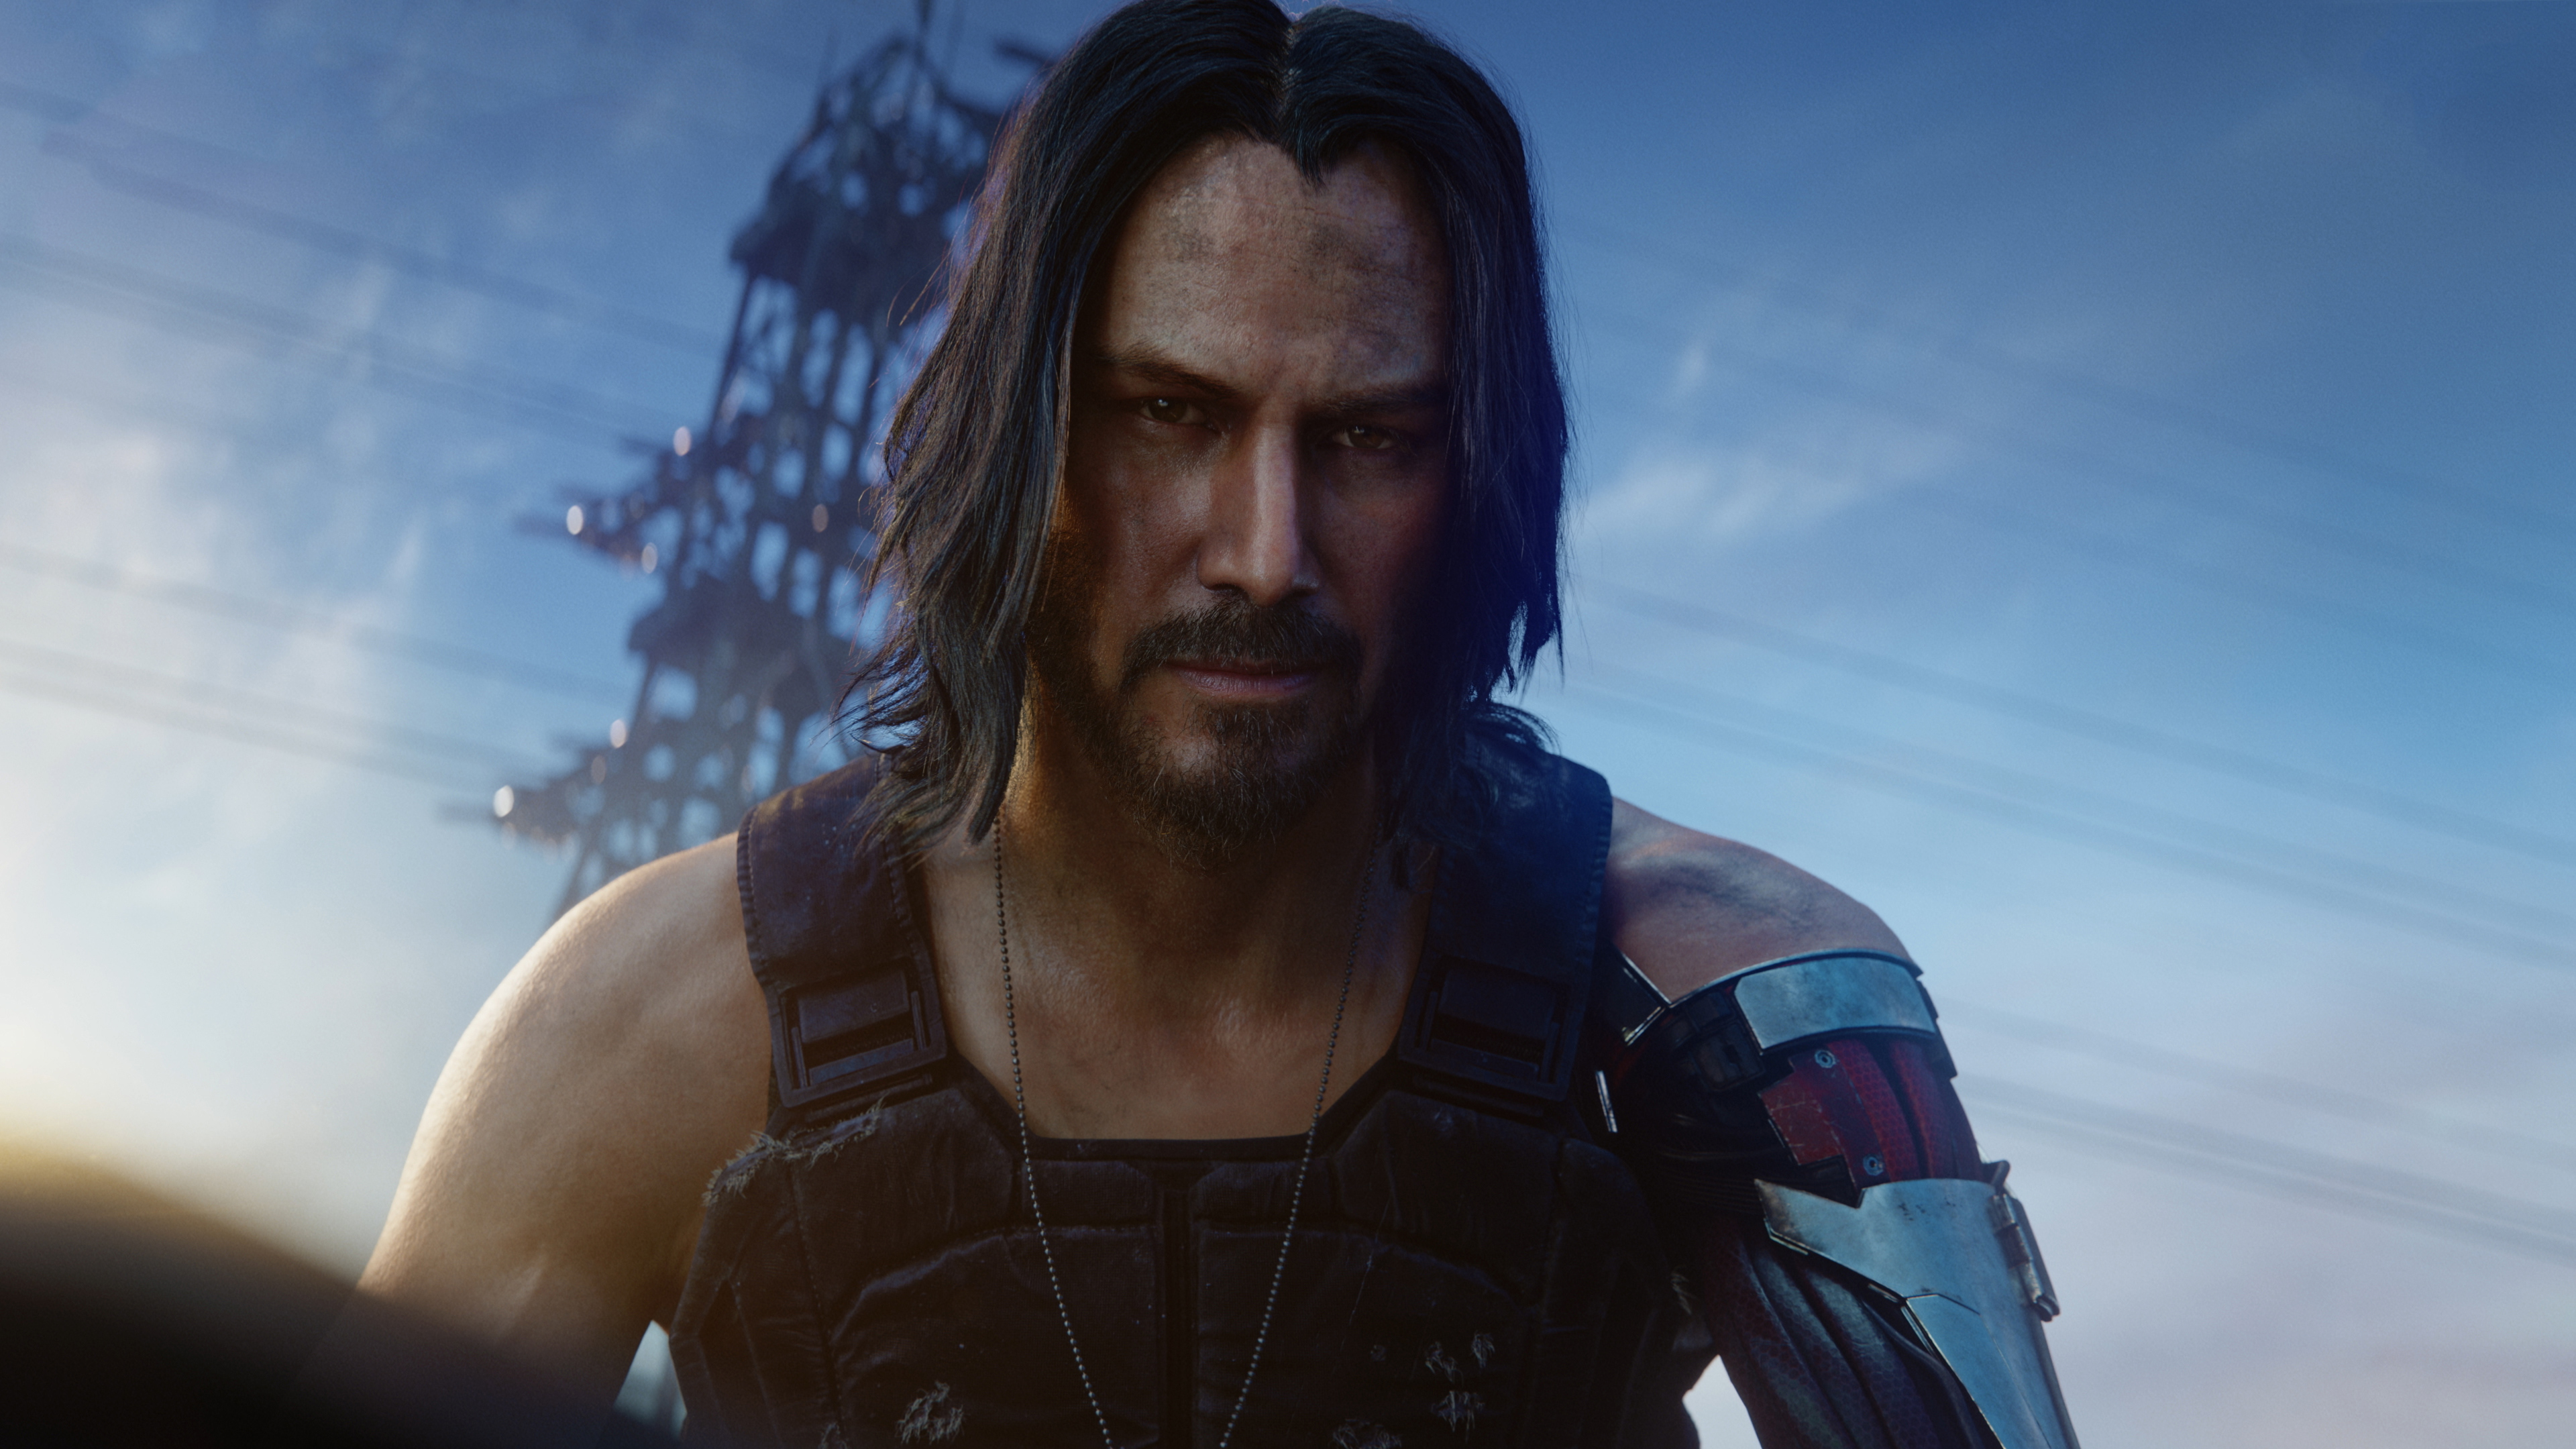 Keanu Reeves In Cyberpunk 2077 Hd Games 4k Wallpapers Images Backgrounds Photos And Pictures